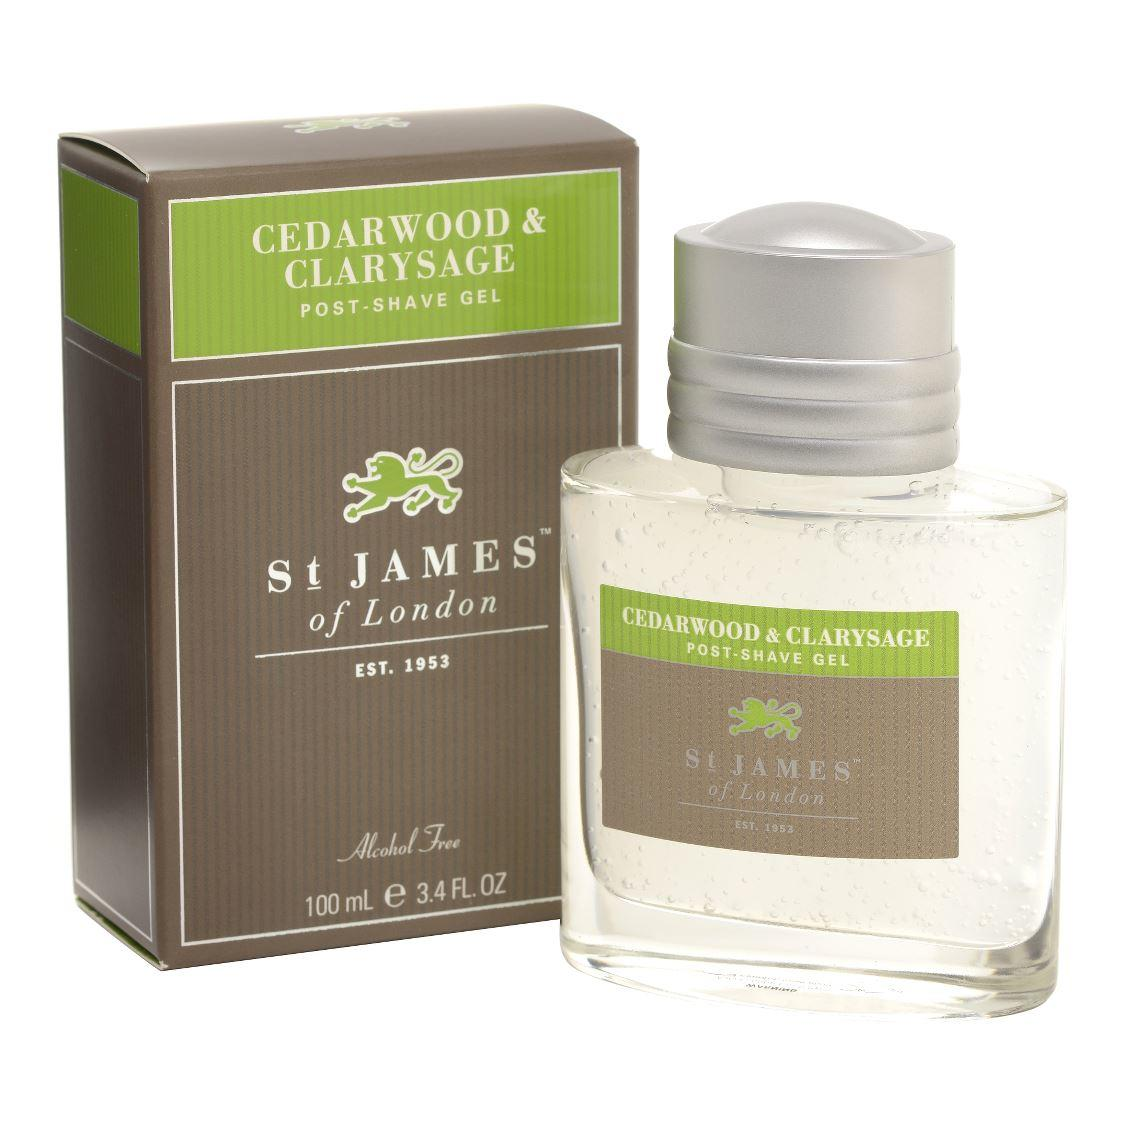 St James of London Cedarwood & Clarysage Post Shave Gel